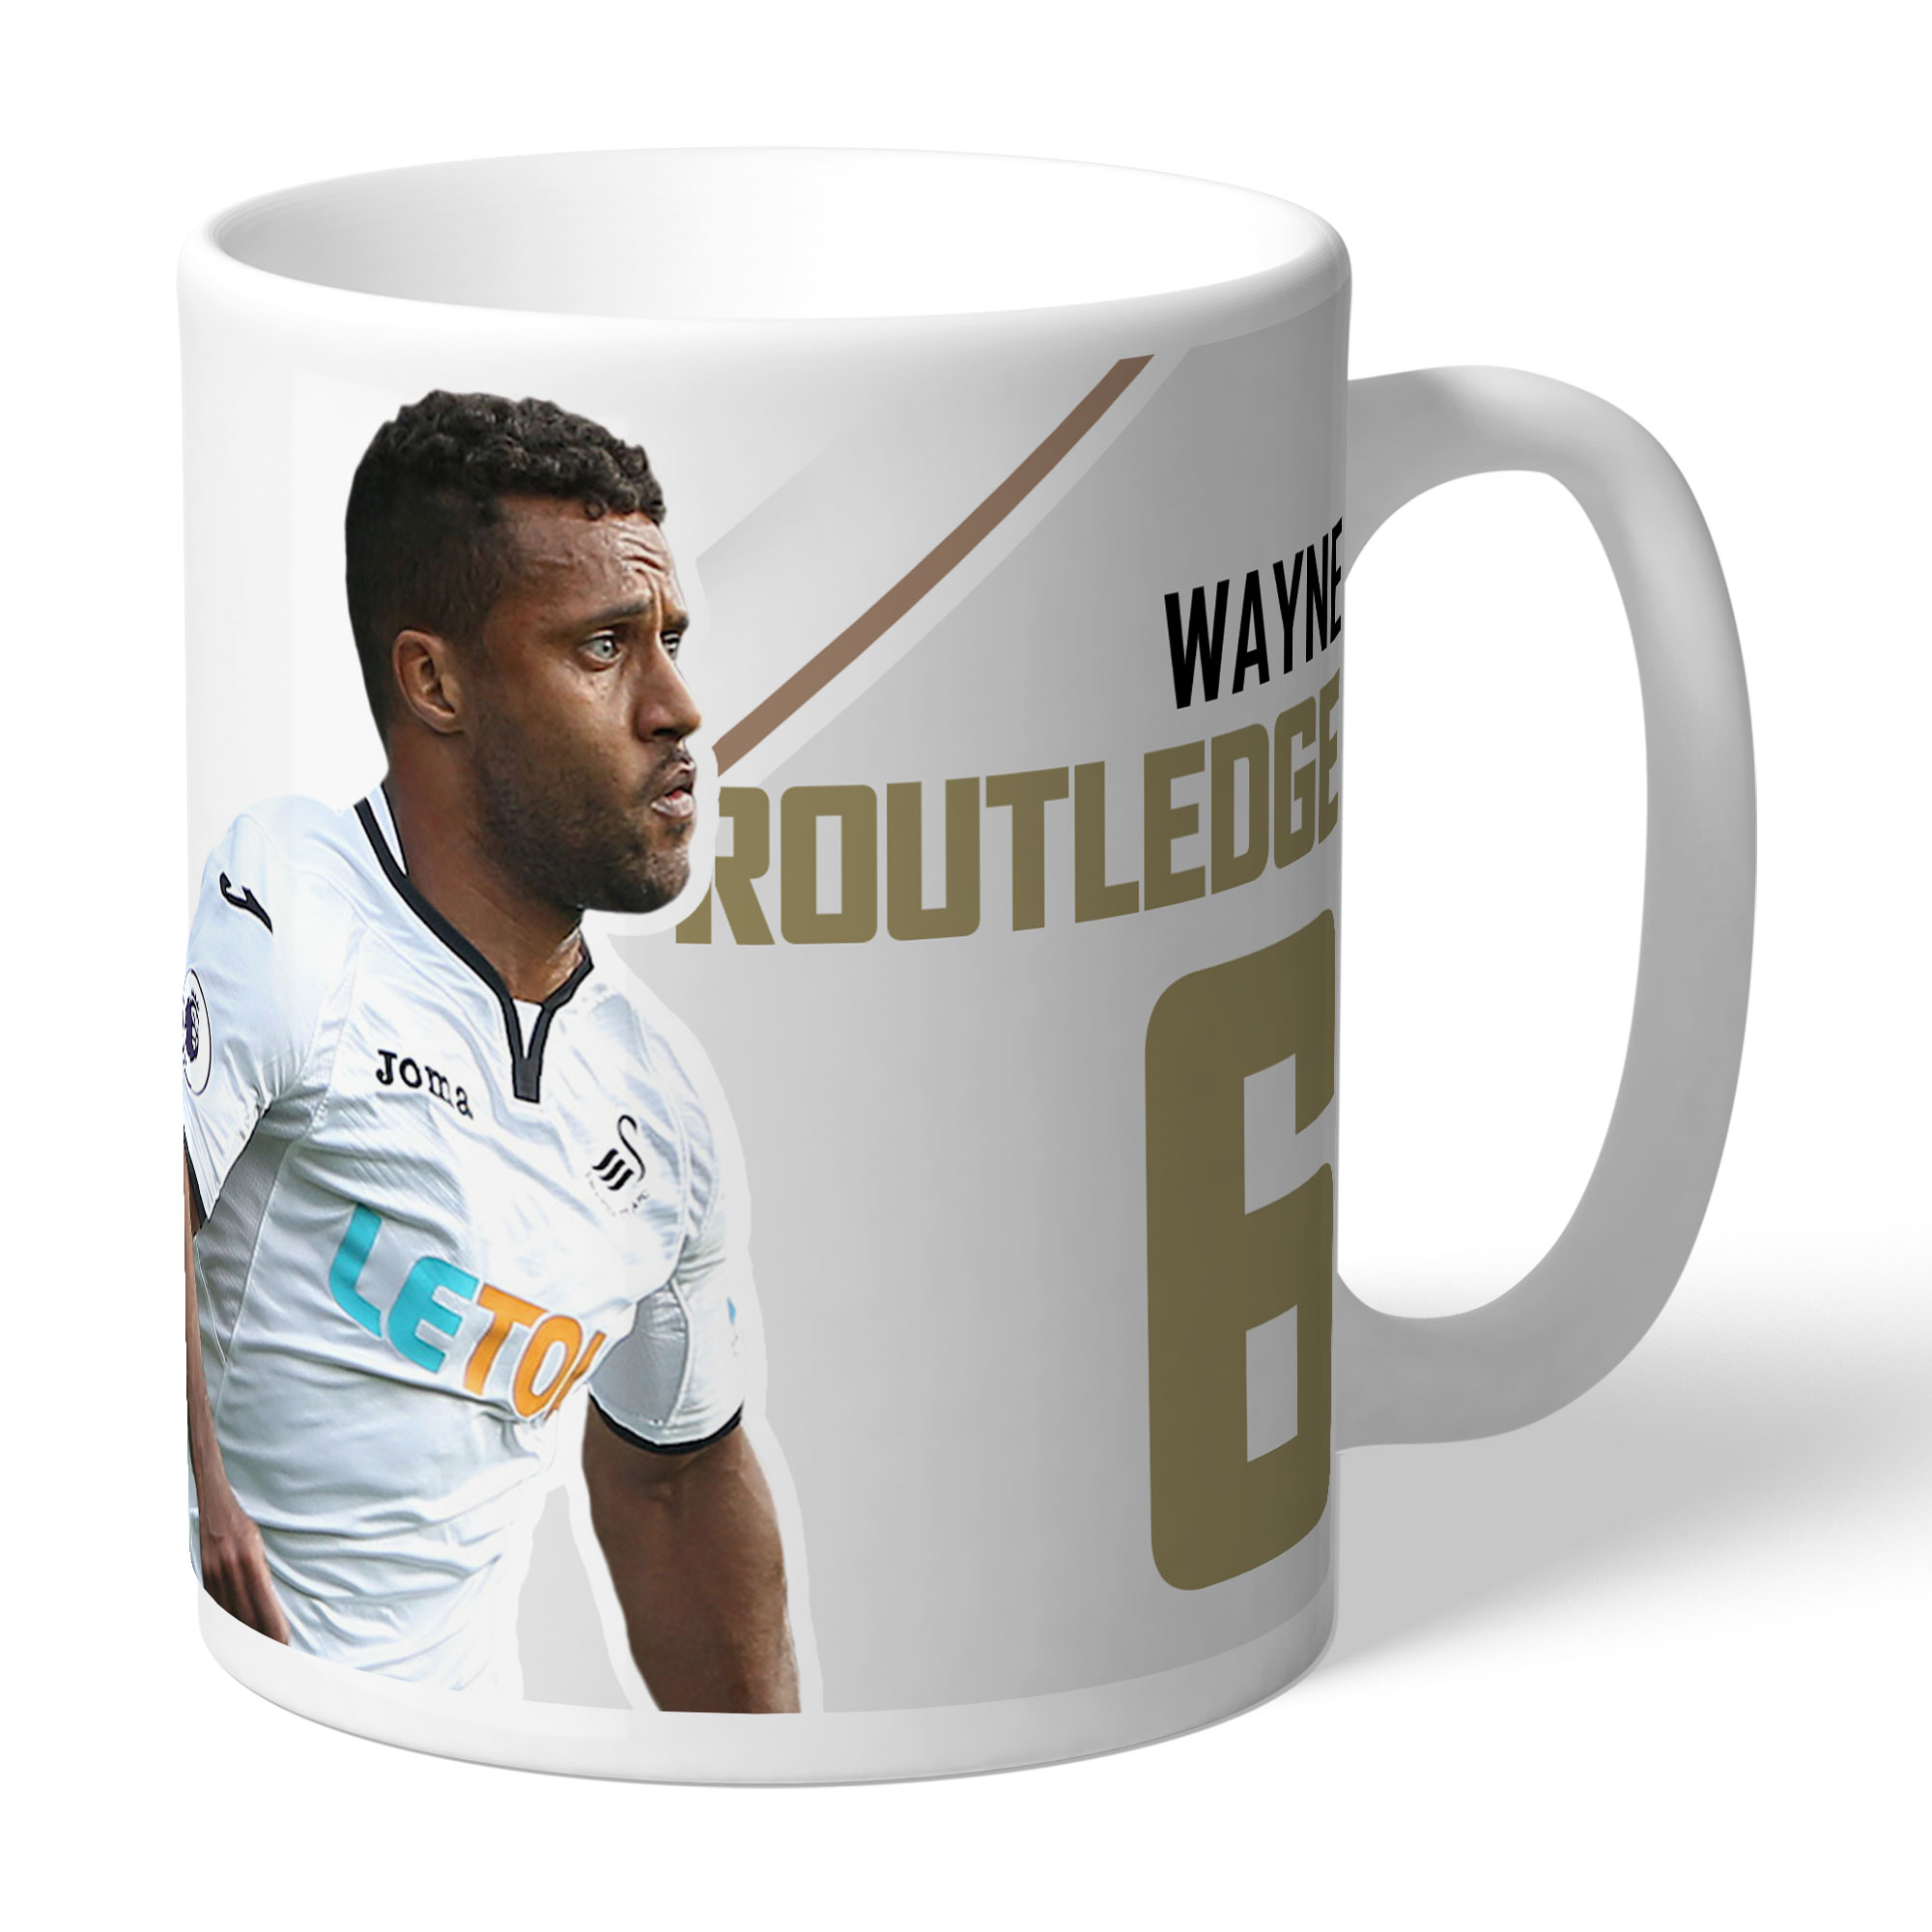 Swansea City AFC Routledge Autograph Mug